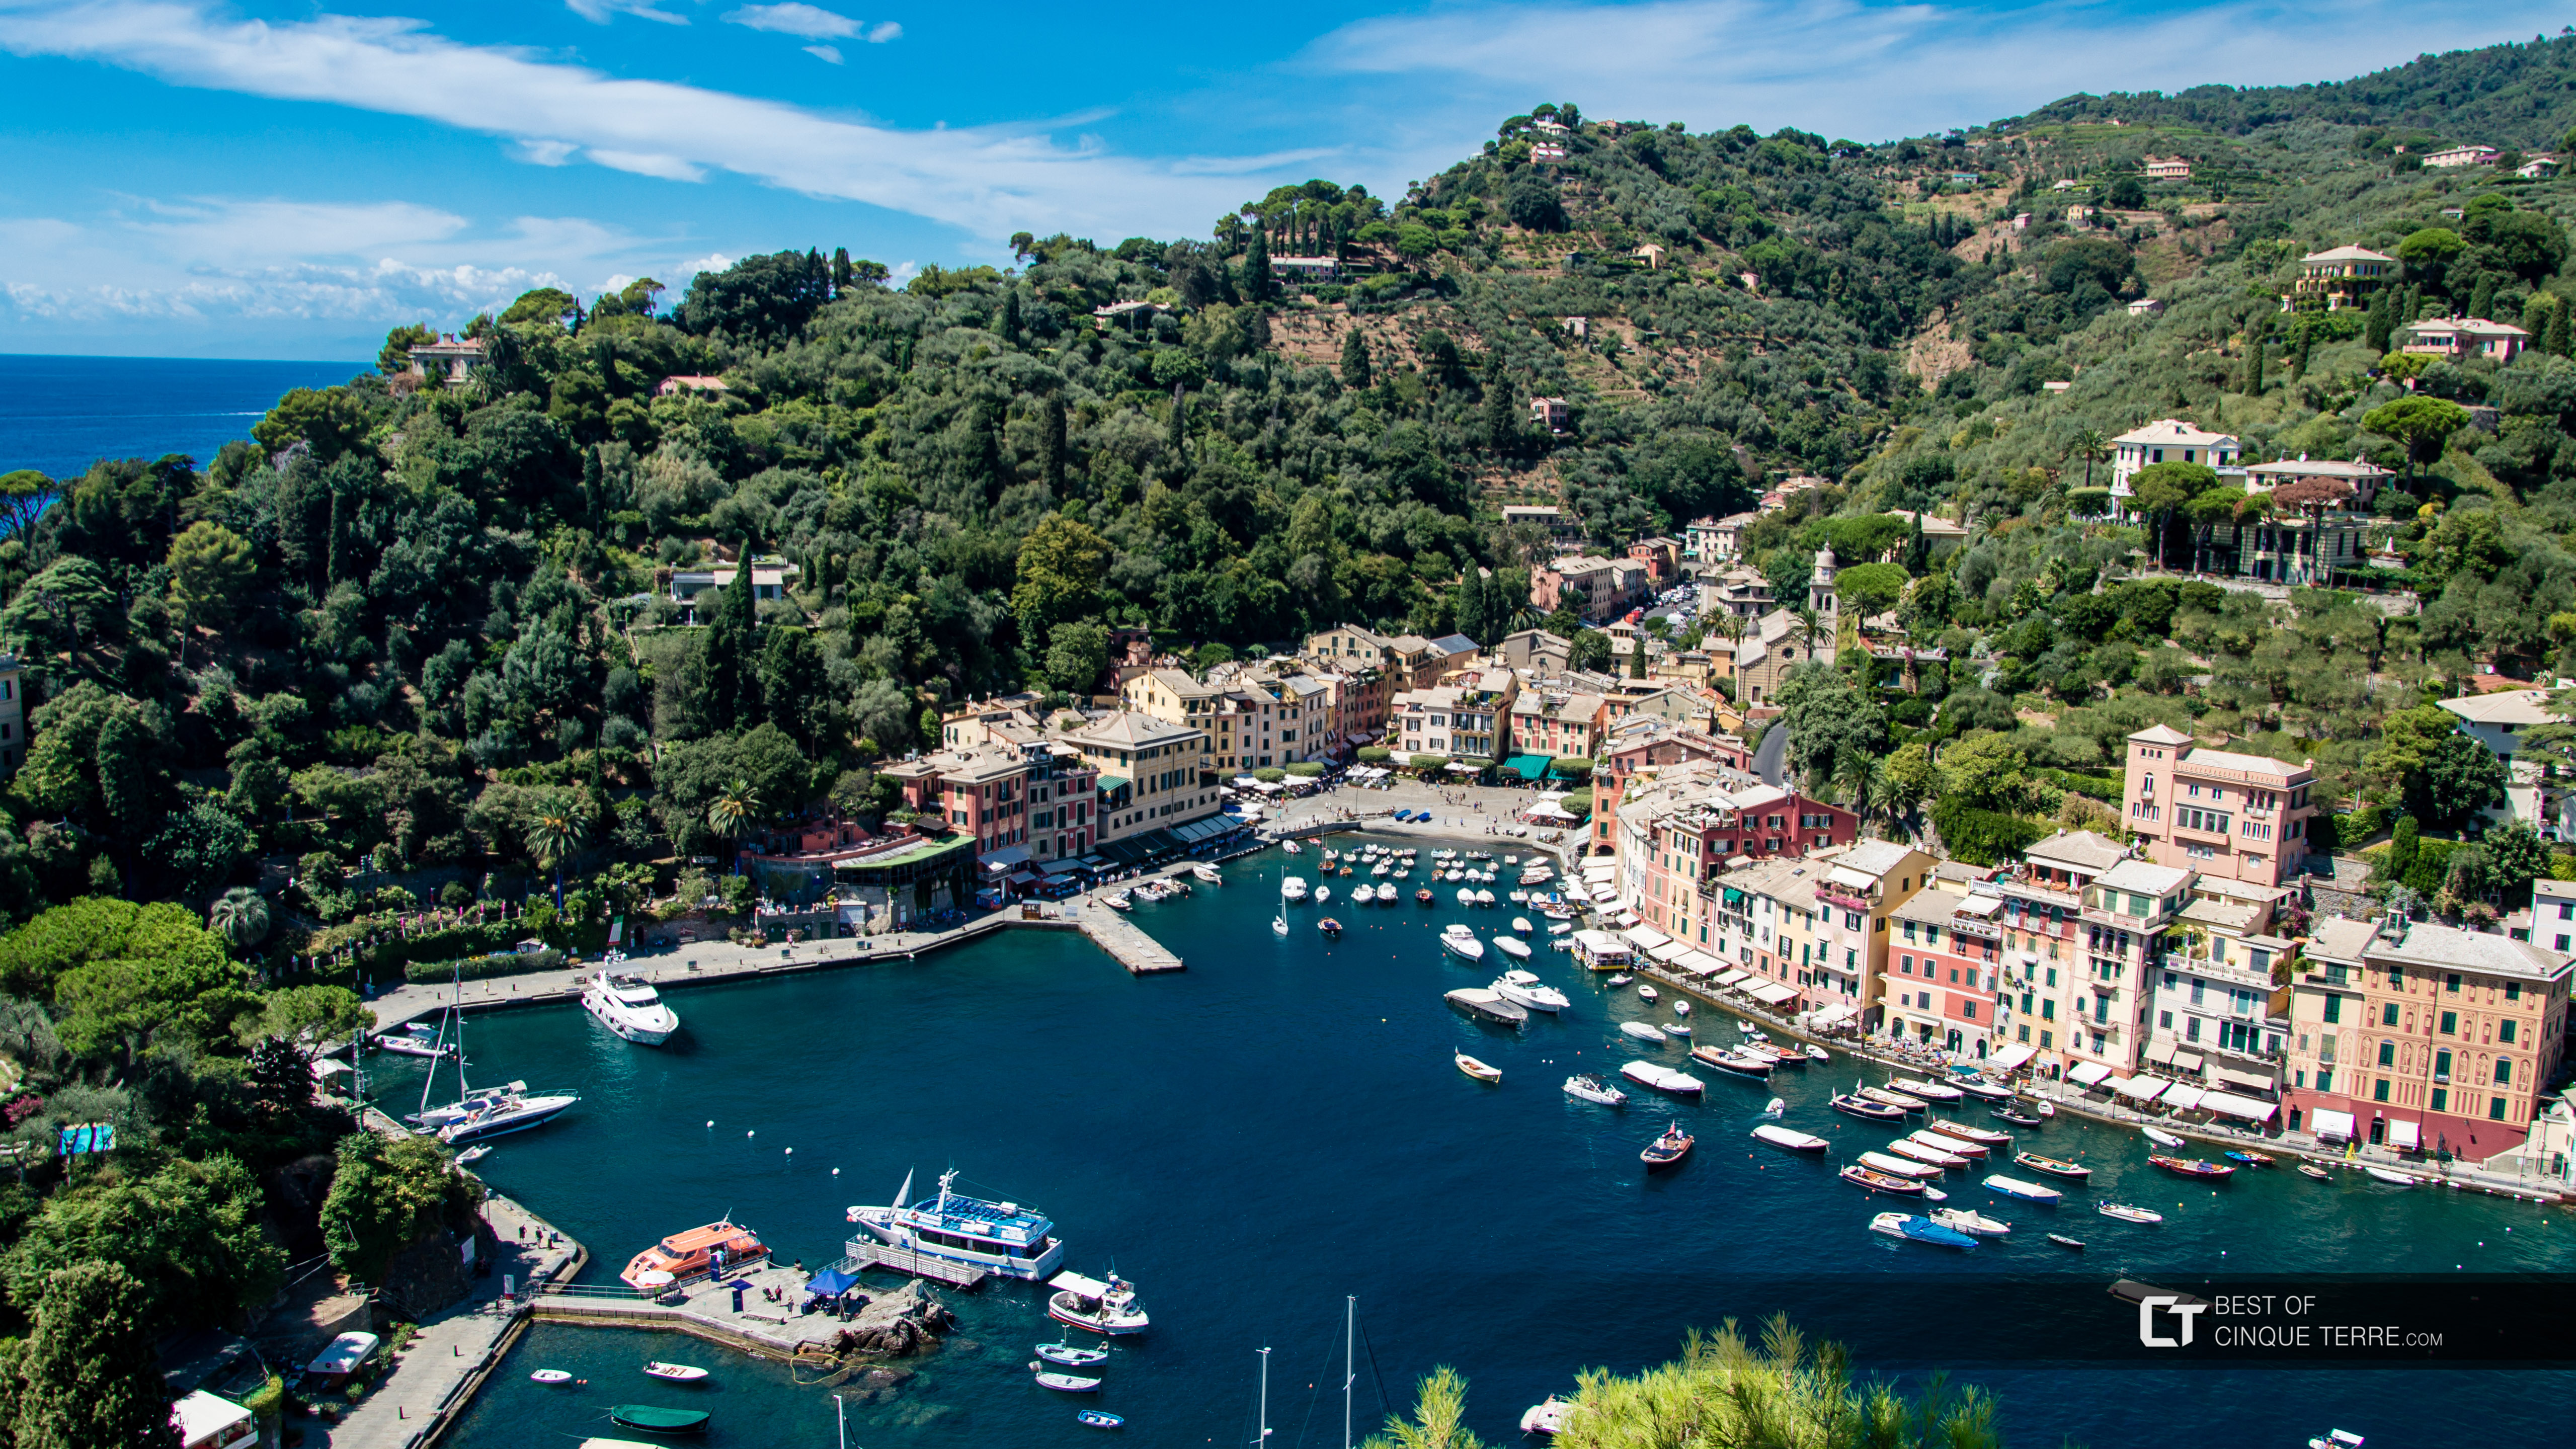 Bay seen from the Brown Castle, Portofino, Italy